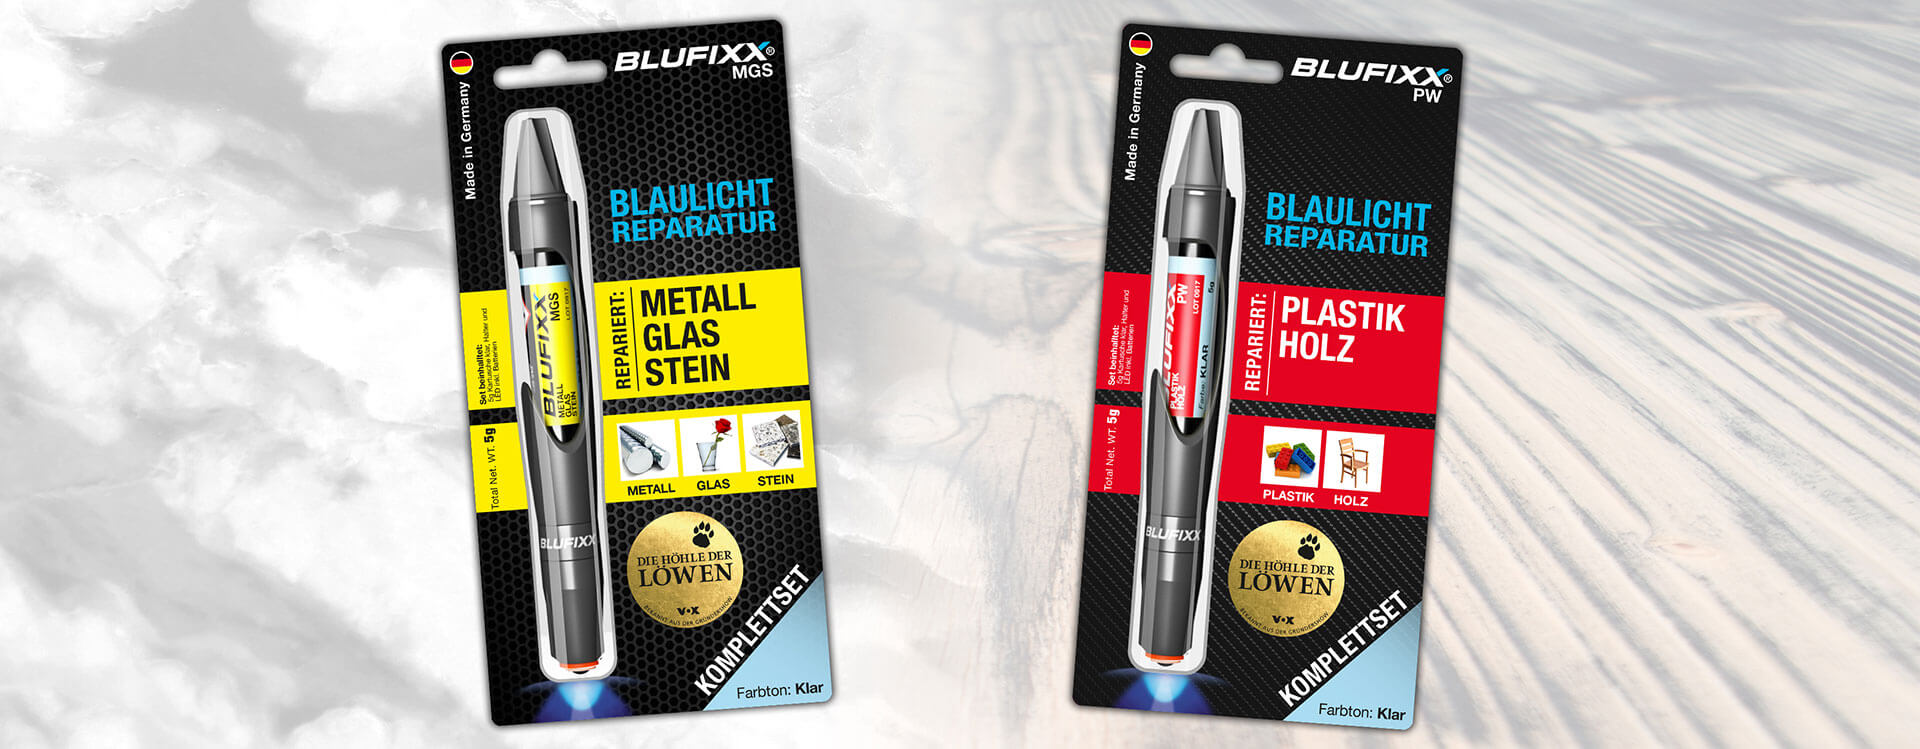 LED Repair Pen | BLUFIXX | Lightcuring Systems